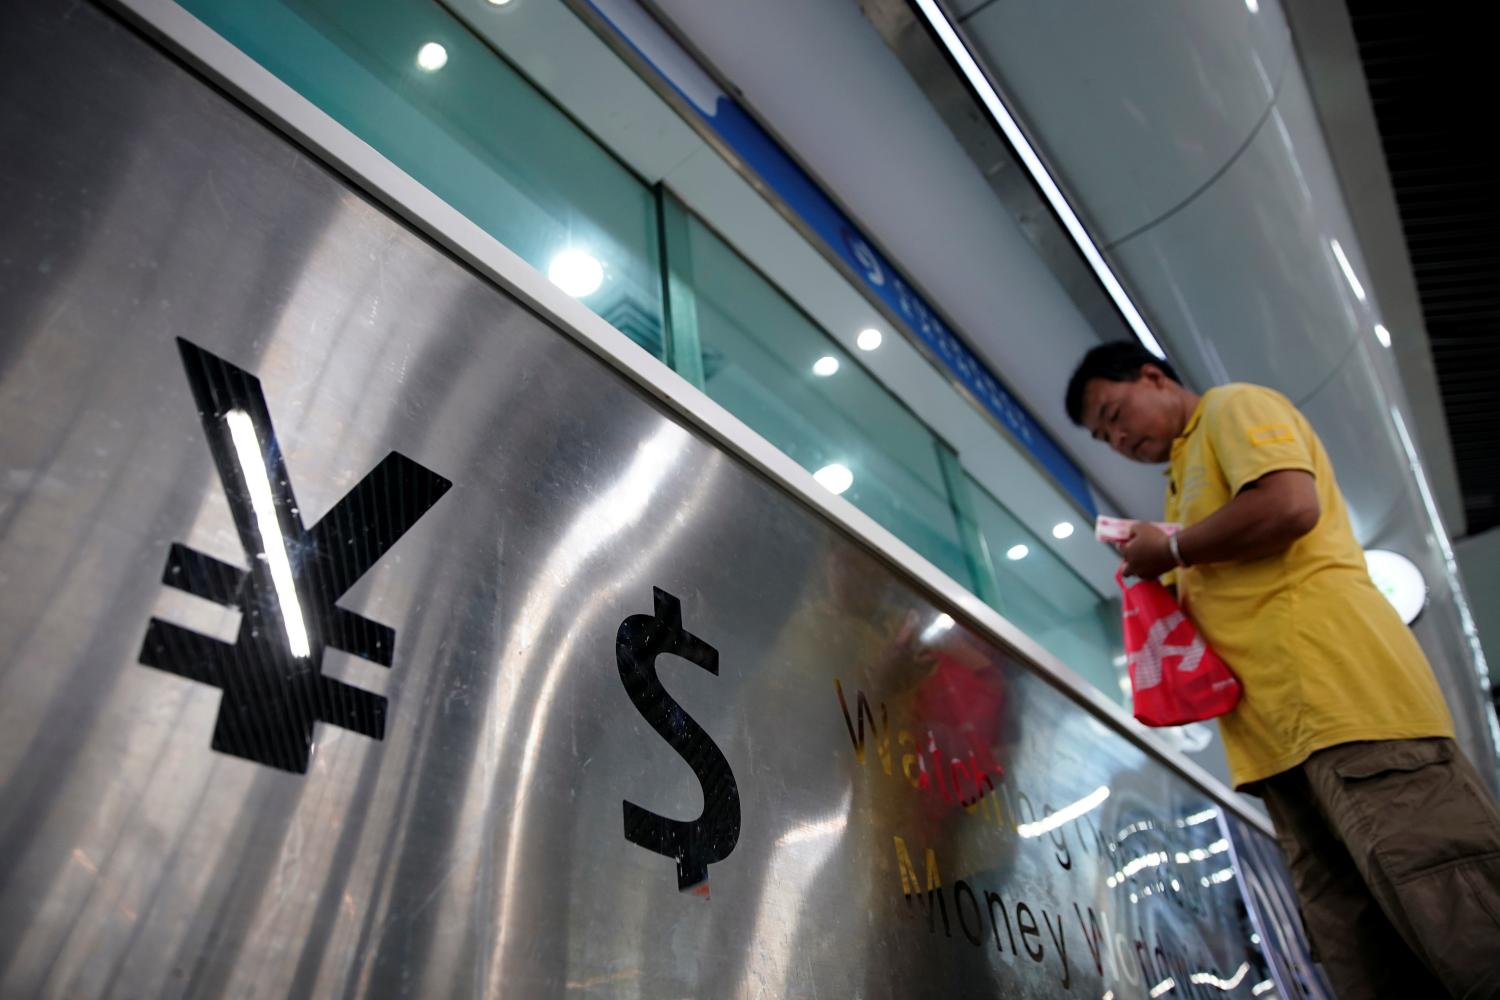 A currency exchange shop in Shanghai. The yuan may fall further still, say analysts. (Reuters photo)